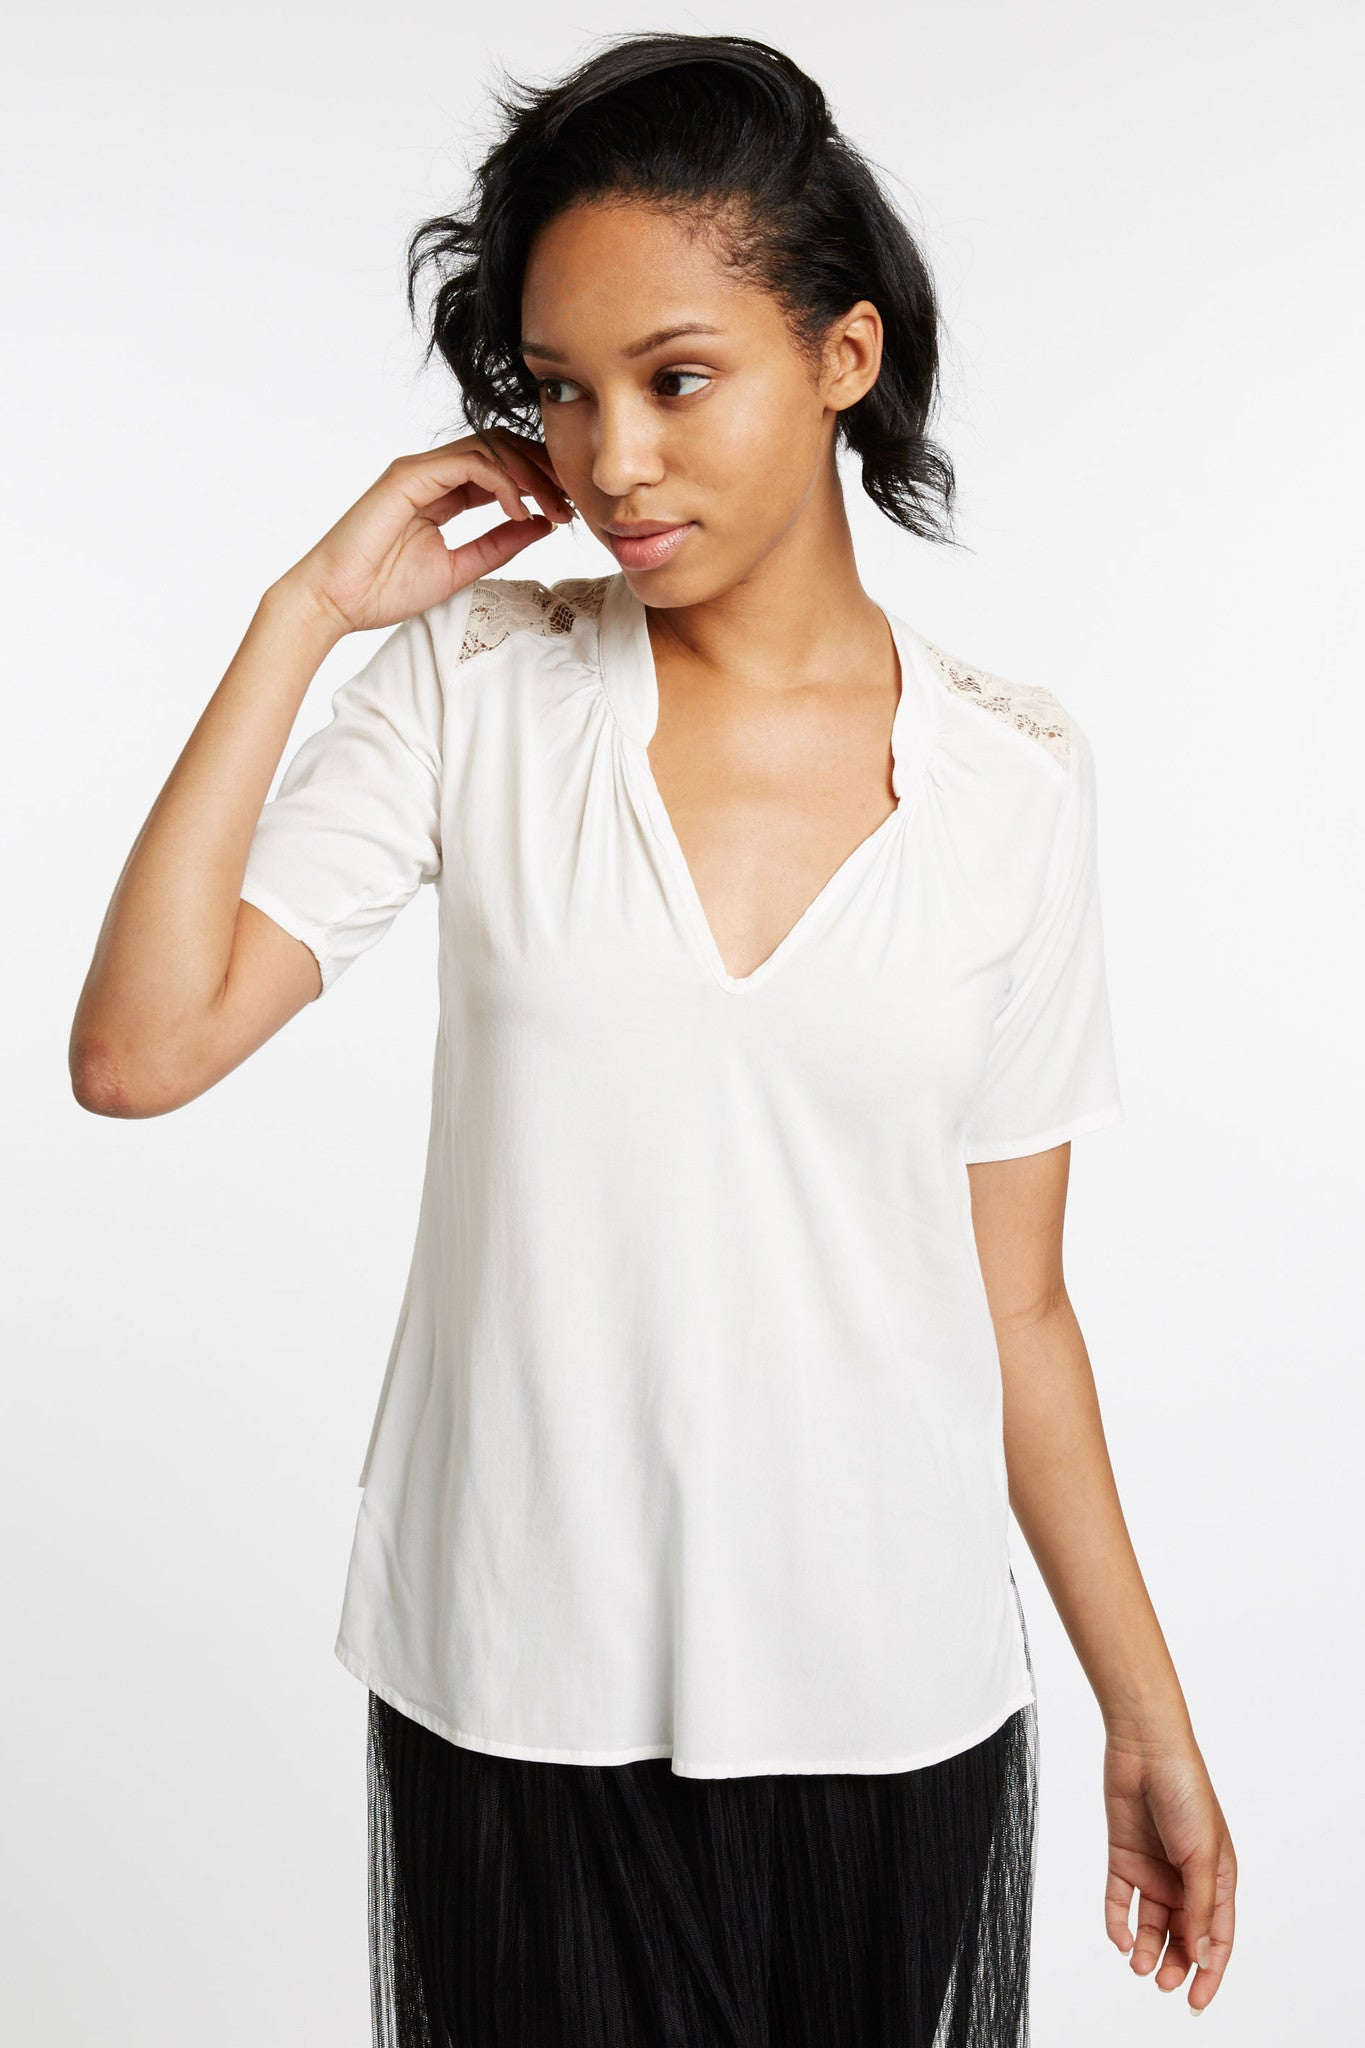 da Vinci Lace Detail Blouse in White by Cameo